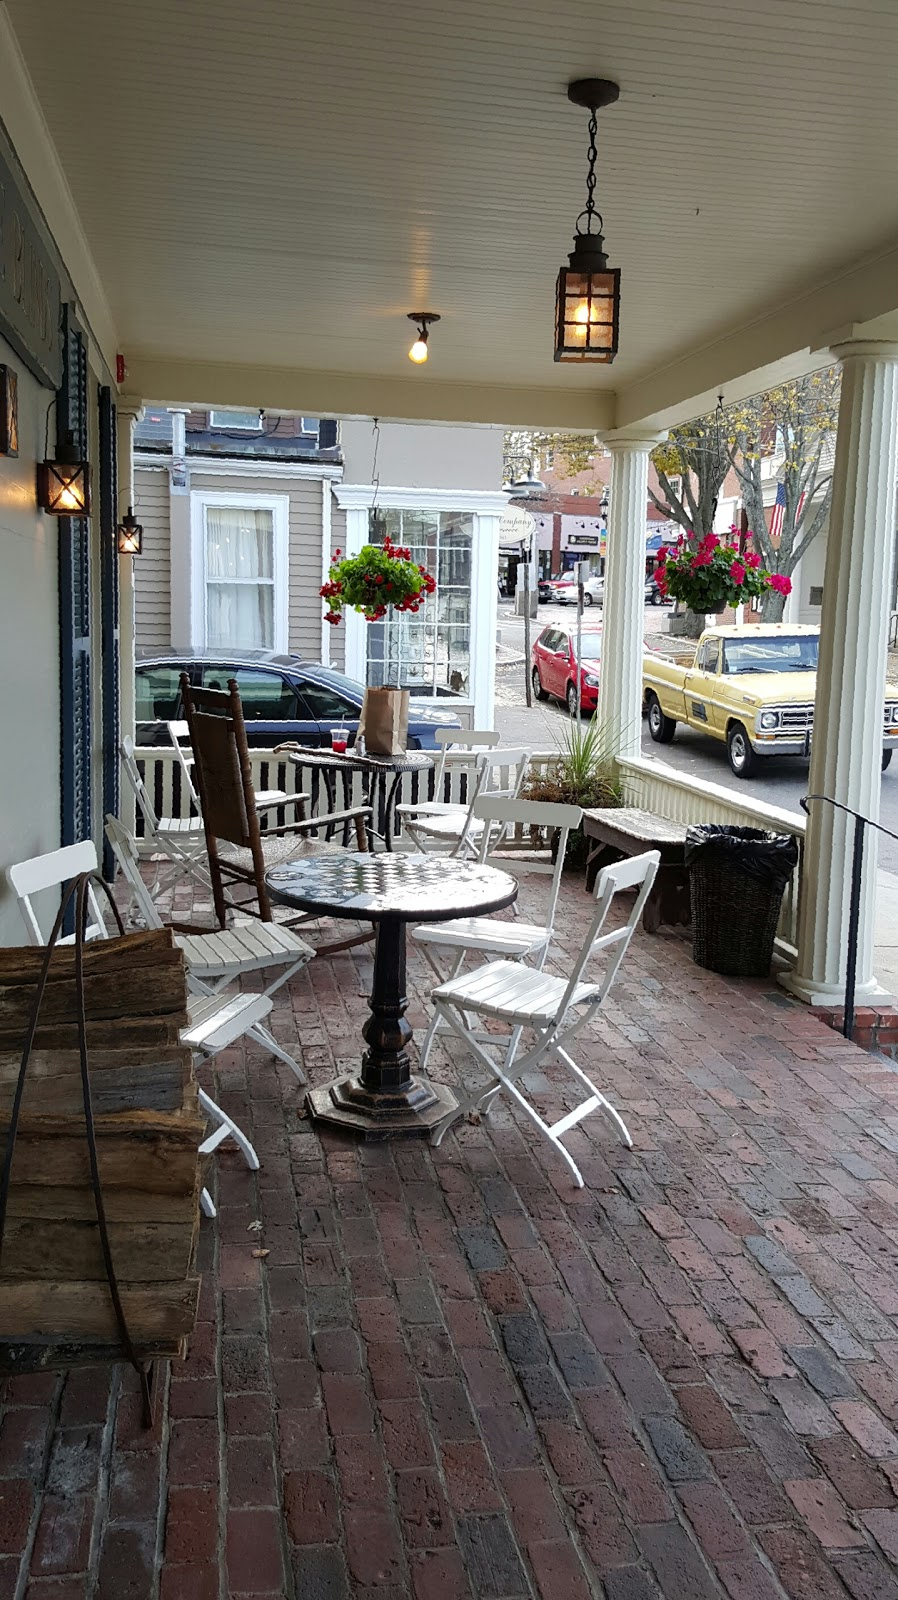 Yellow Deli/Blue Blinds Bakery   meal takeaway   7 North St, Plymouth, MA 02360, USA   5087470462 OR +1 508-747-0462